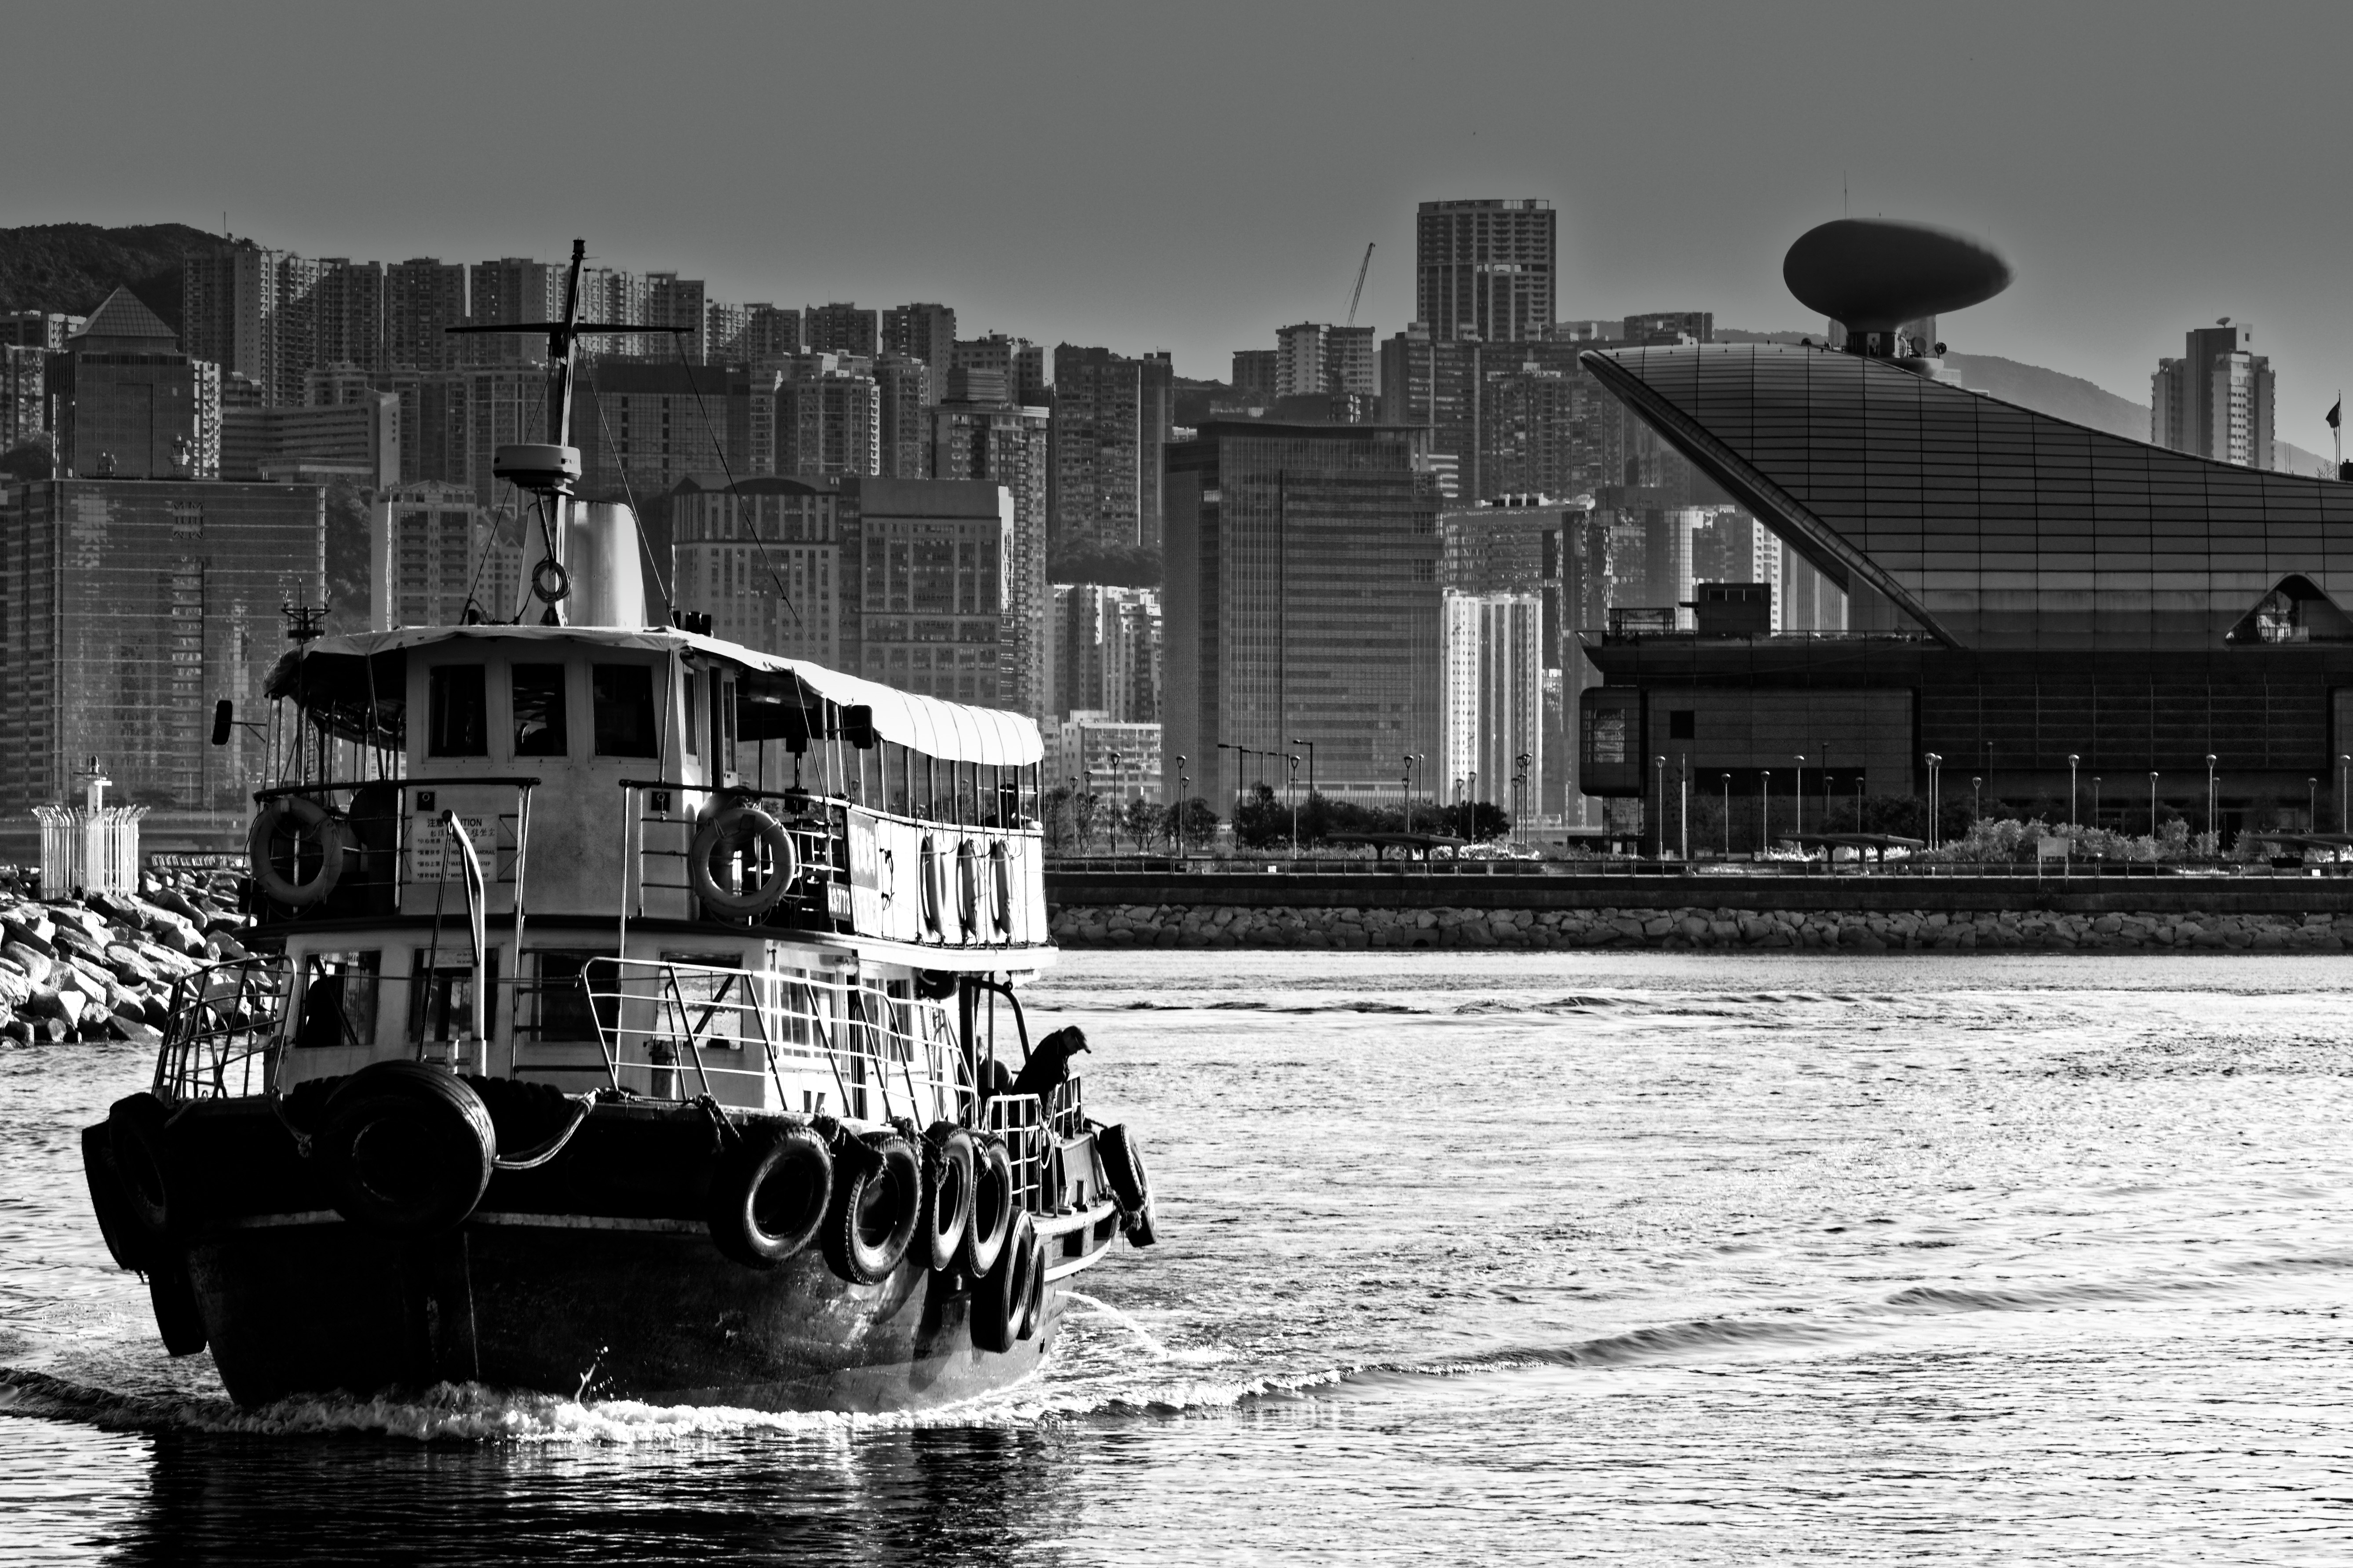 FERRY HONG KONG WATERFRONT KWUN TONG